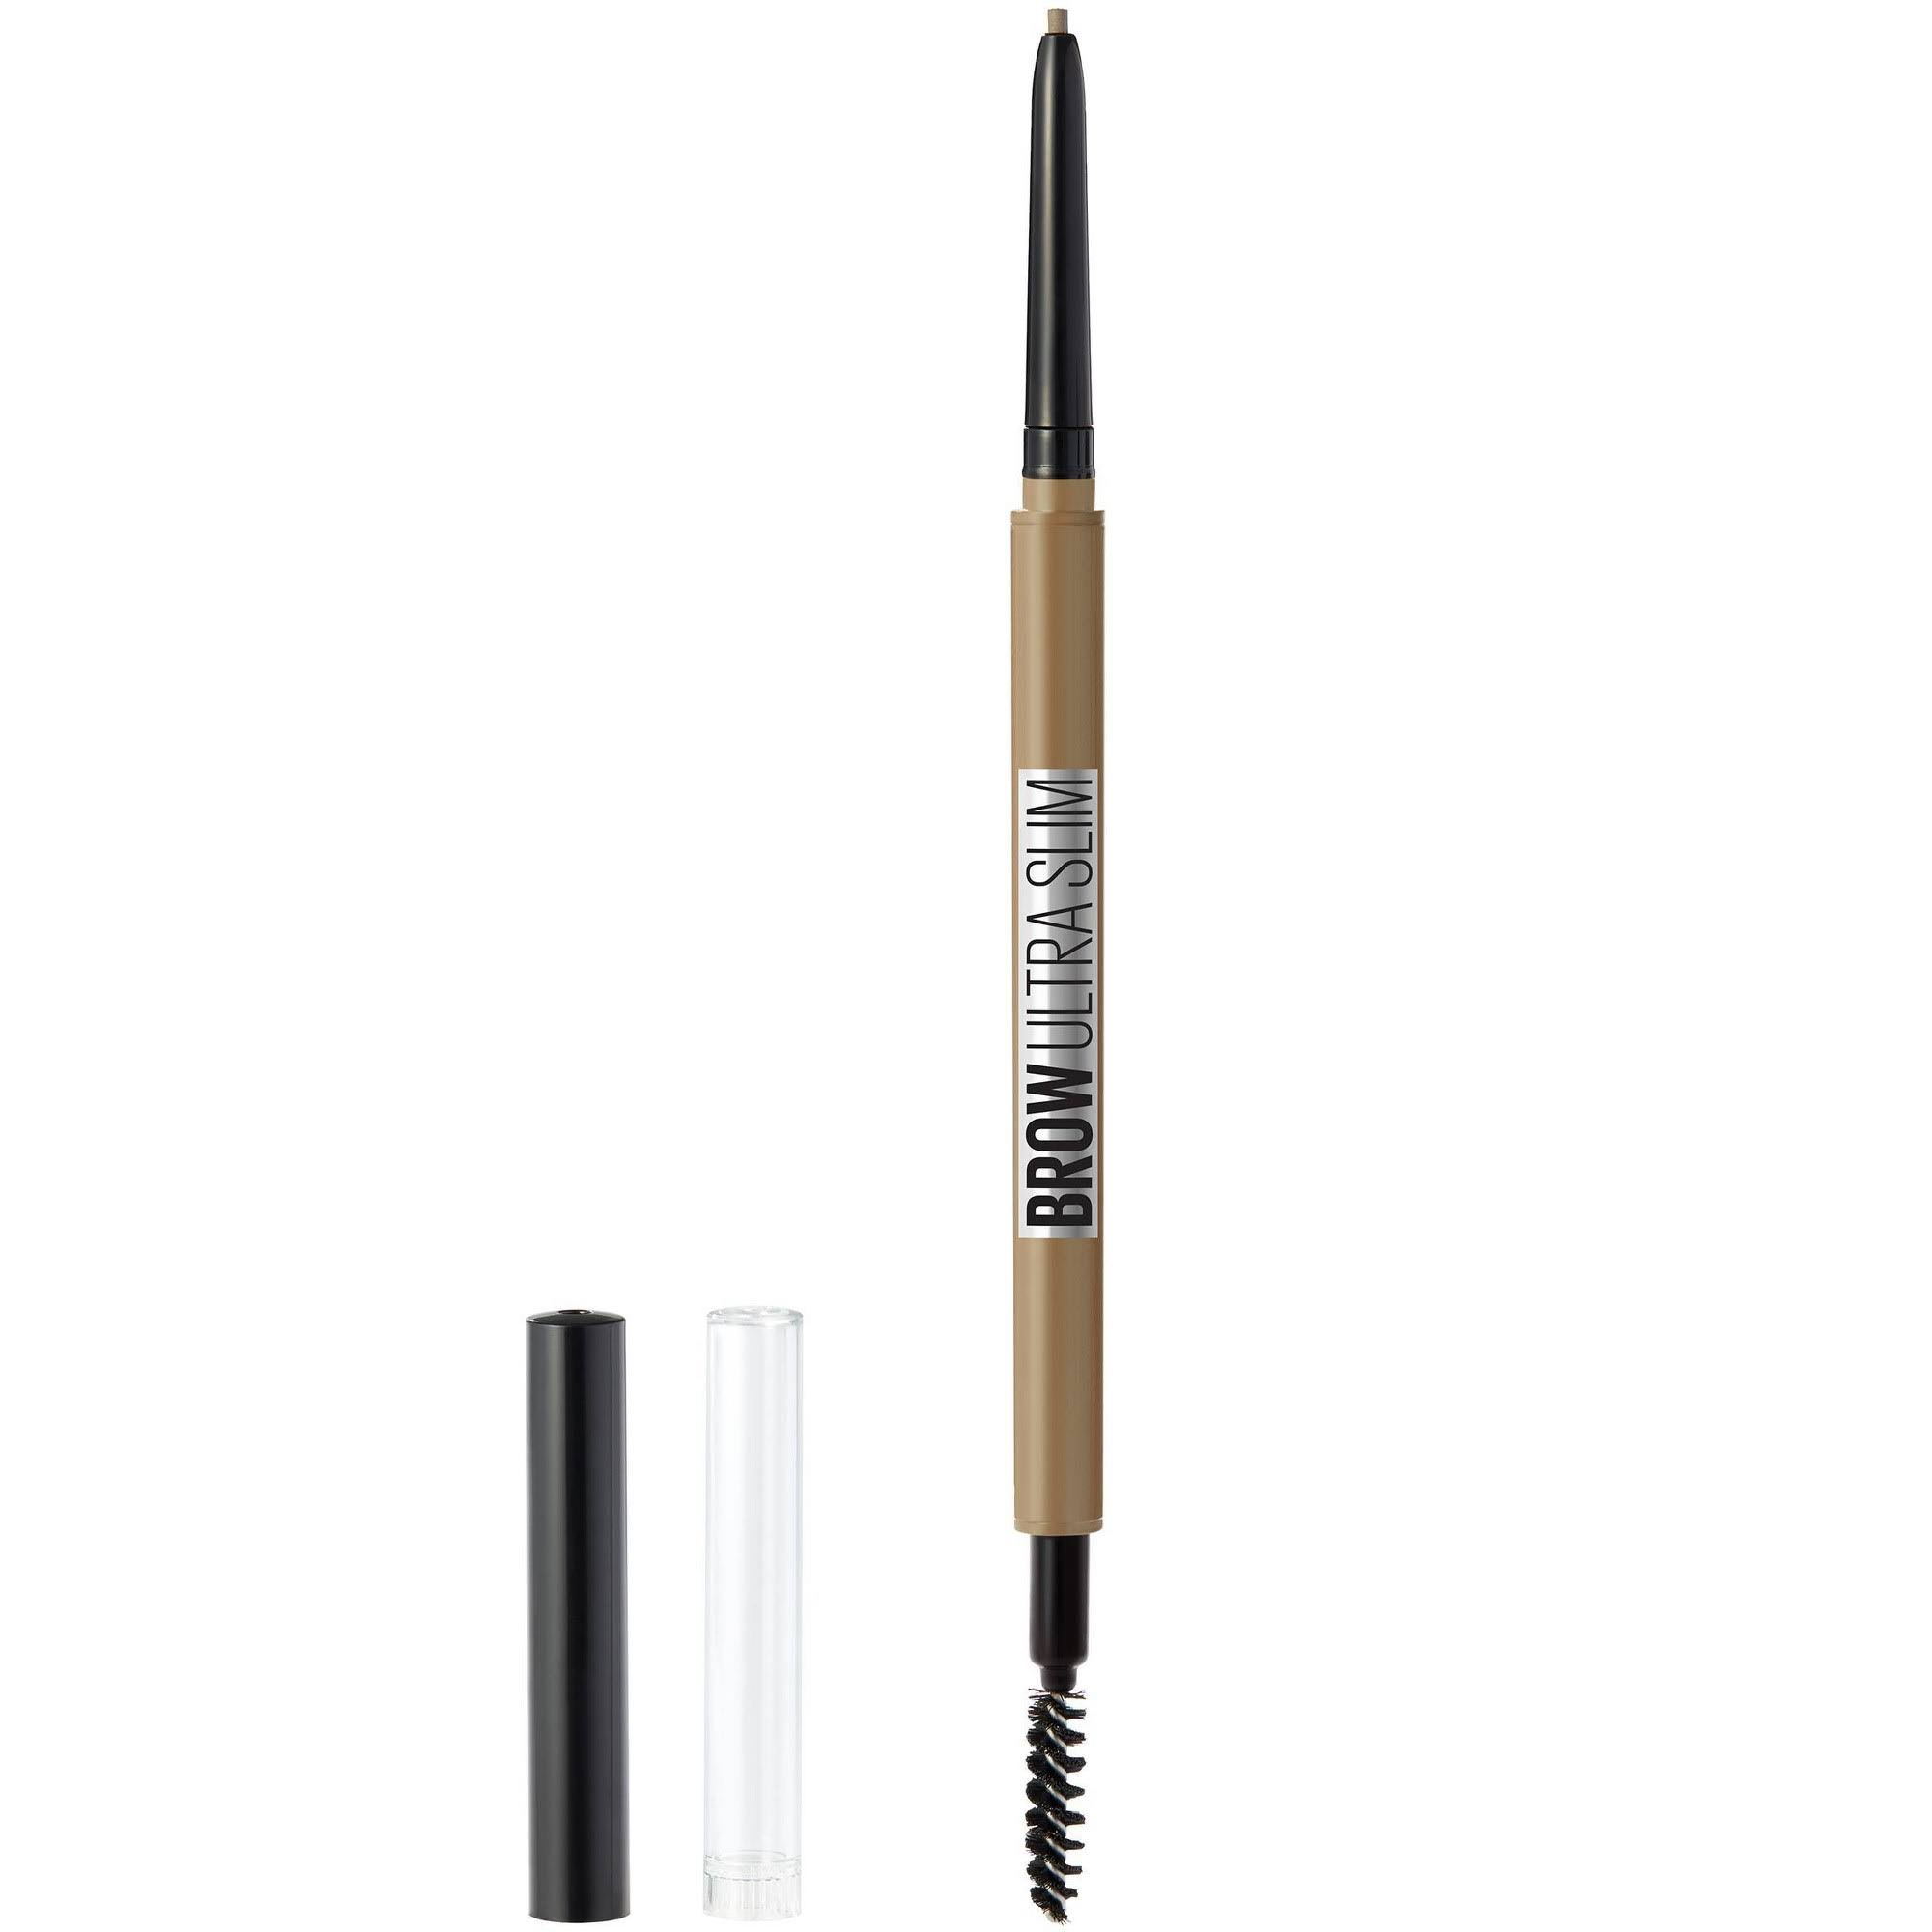 Maybelline Defining Pencil, Brow Ultra Slim, Blonde 250 - 0.003 oz